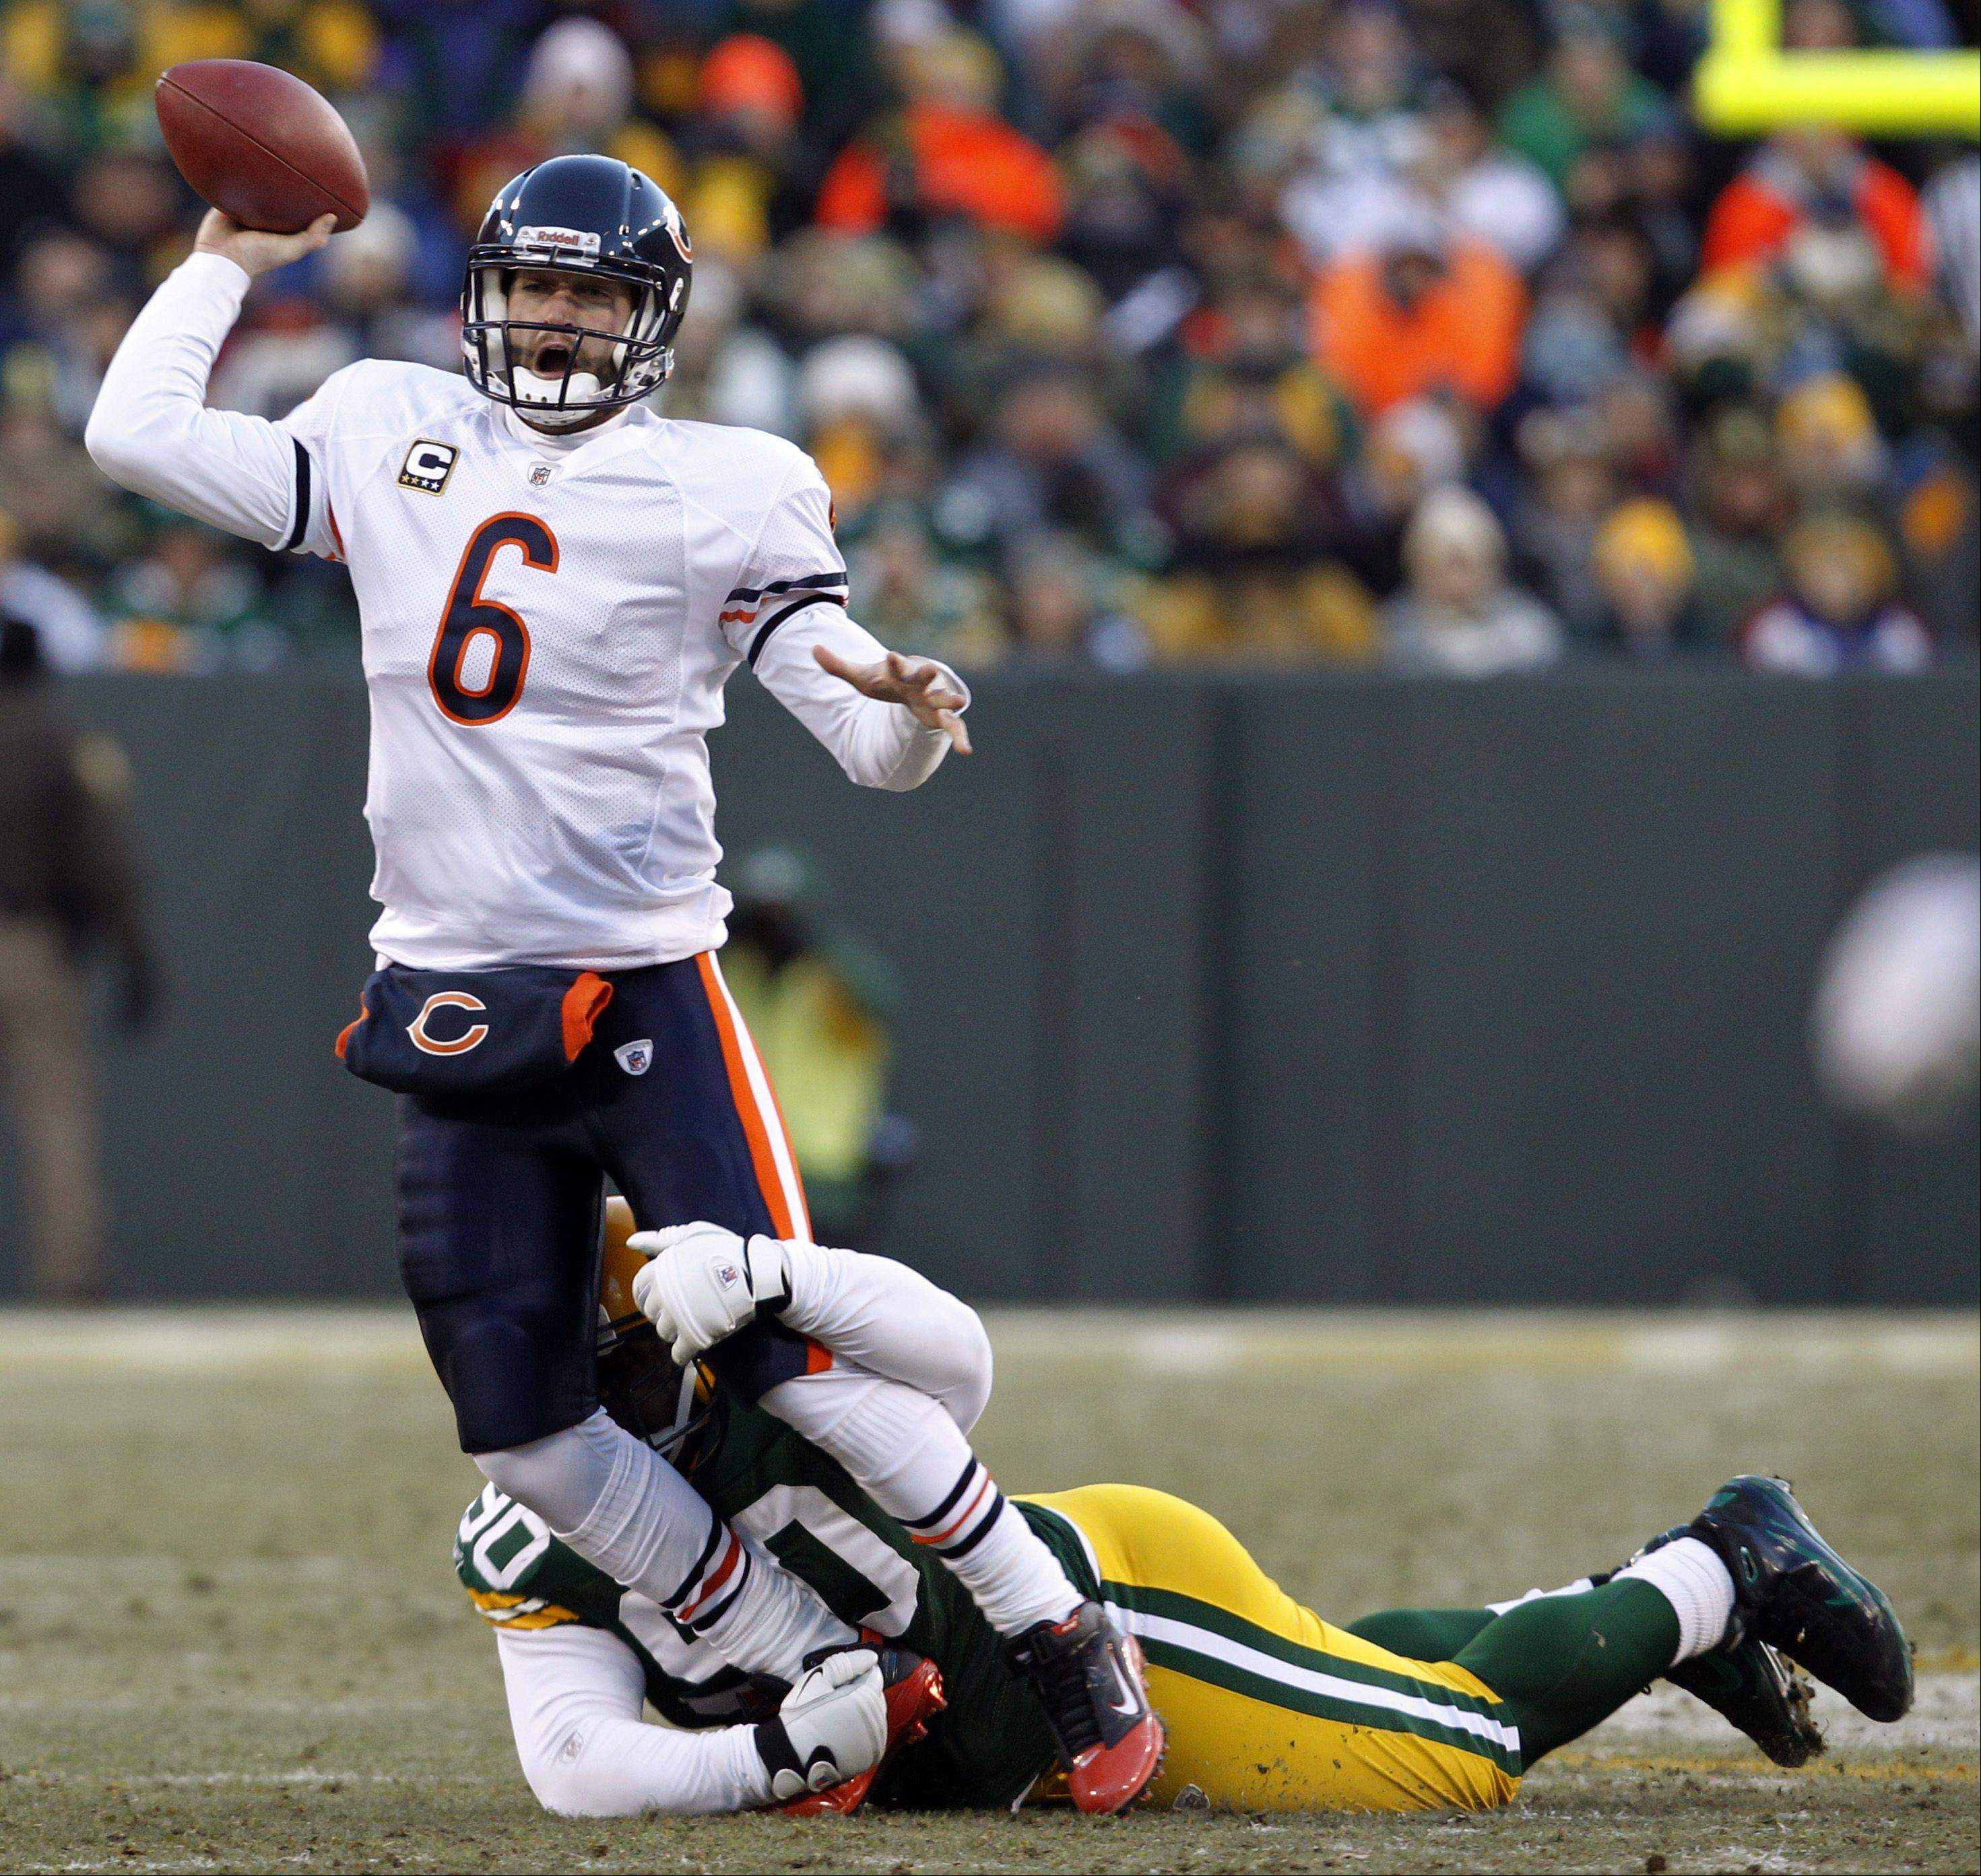 Still sore from the beating he took against the New Orleans Saints, Bears quarterback Jay Cutler said he expects to recover in time for Sunday�s game against the Green Bay Packers at Soldier Field. In this photo, B.J. Raji of the Packers wraps up Cutler in the NFC Championship game last January.